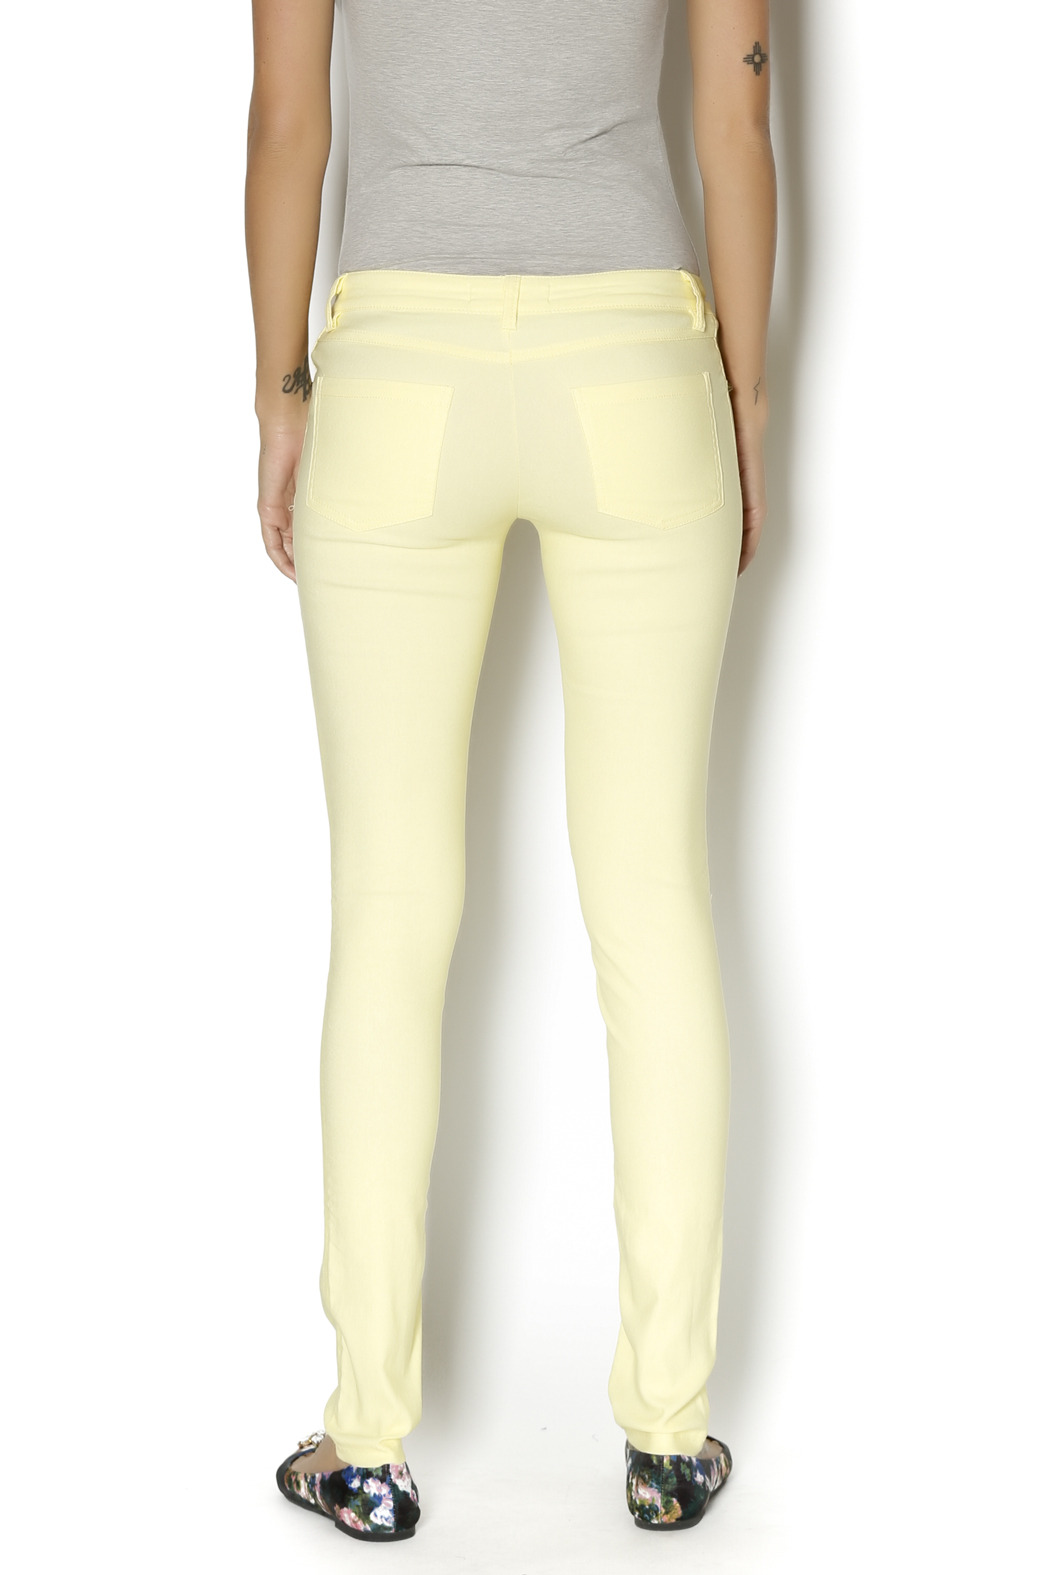 Karlie Neon Yellow Jeggings - Back Cropped Image